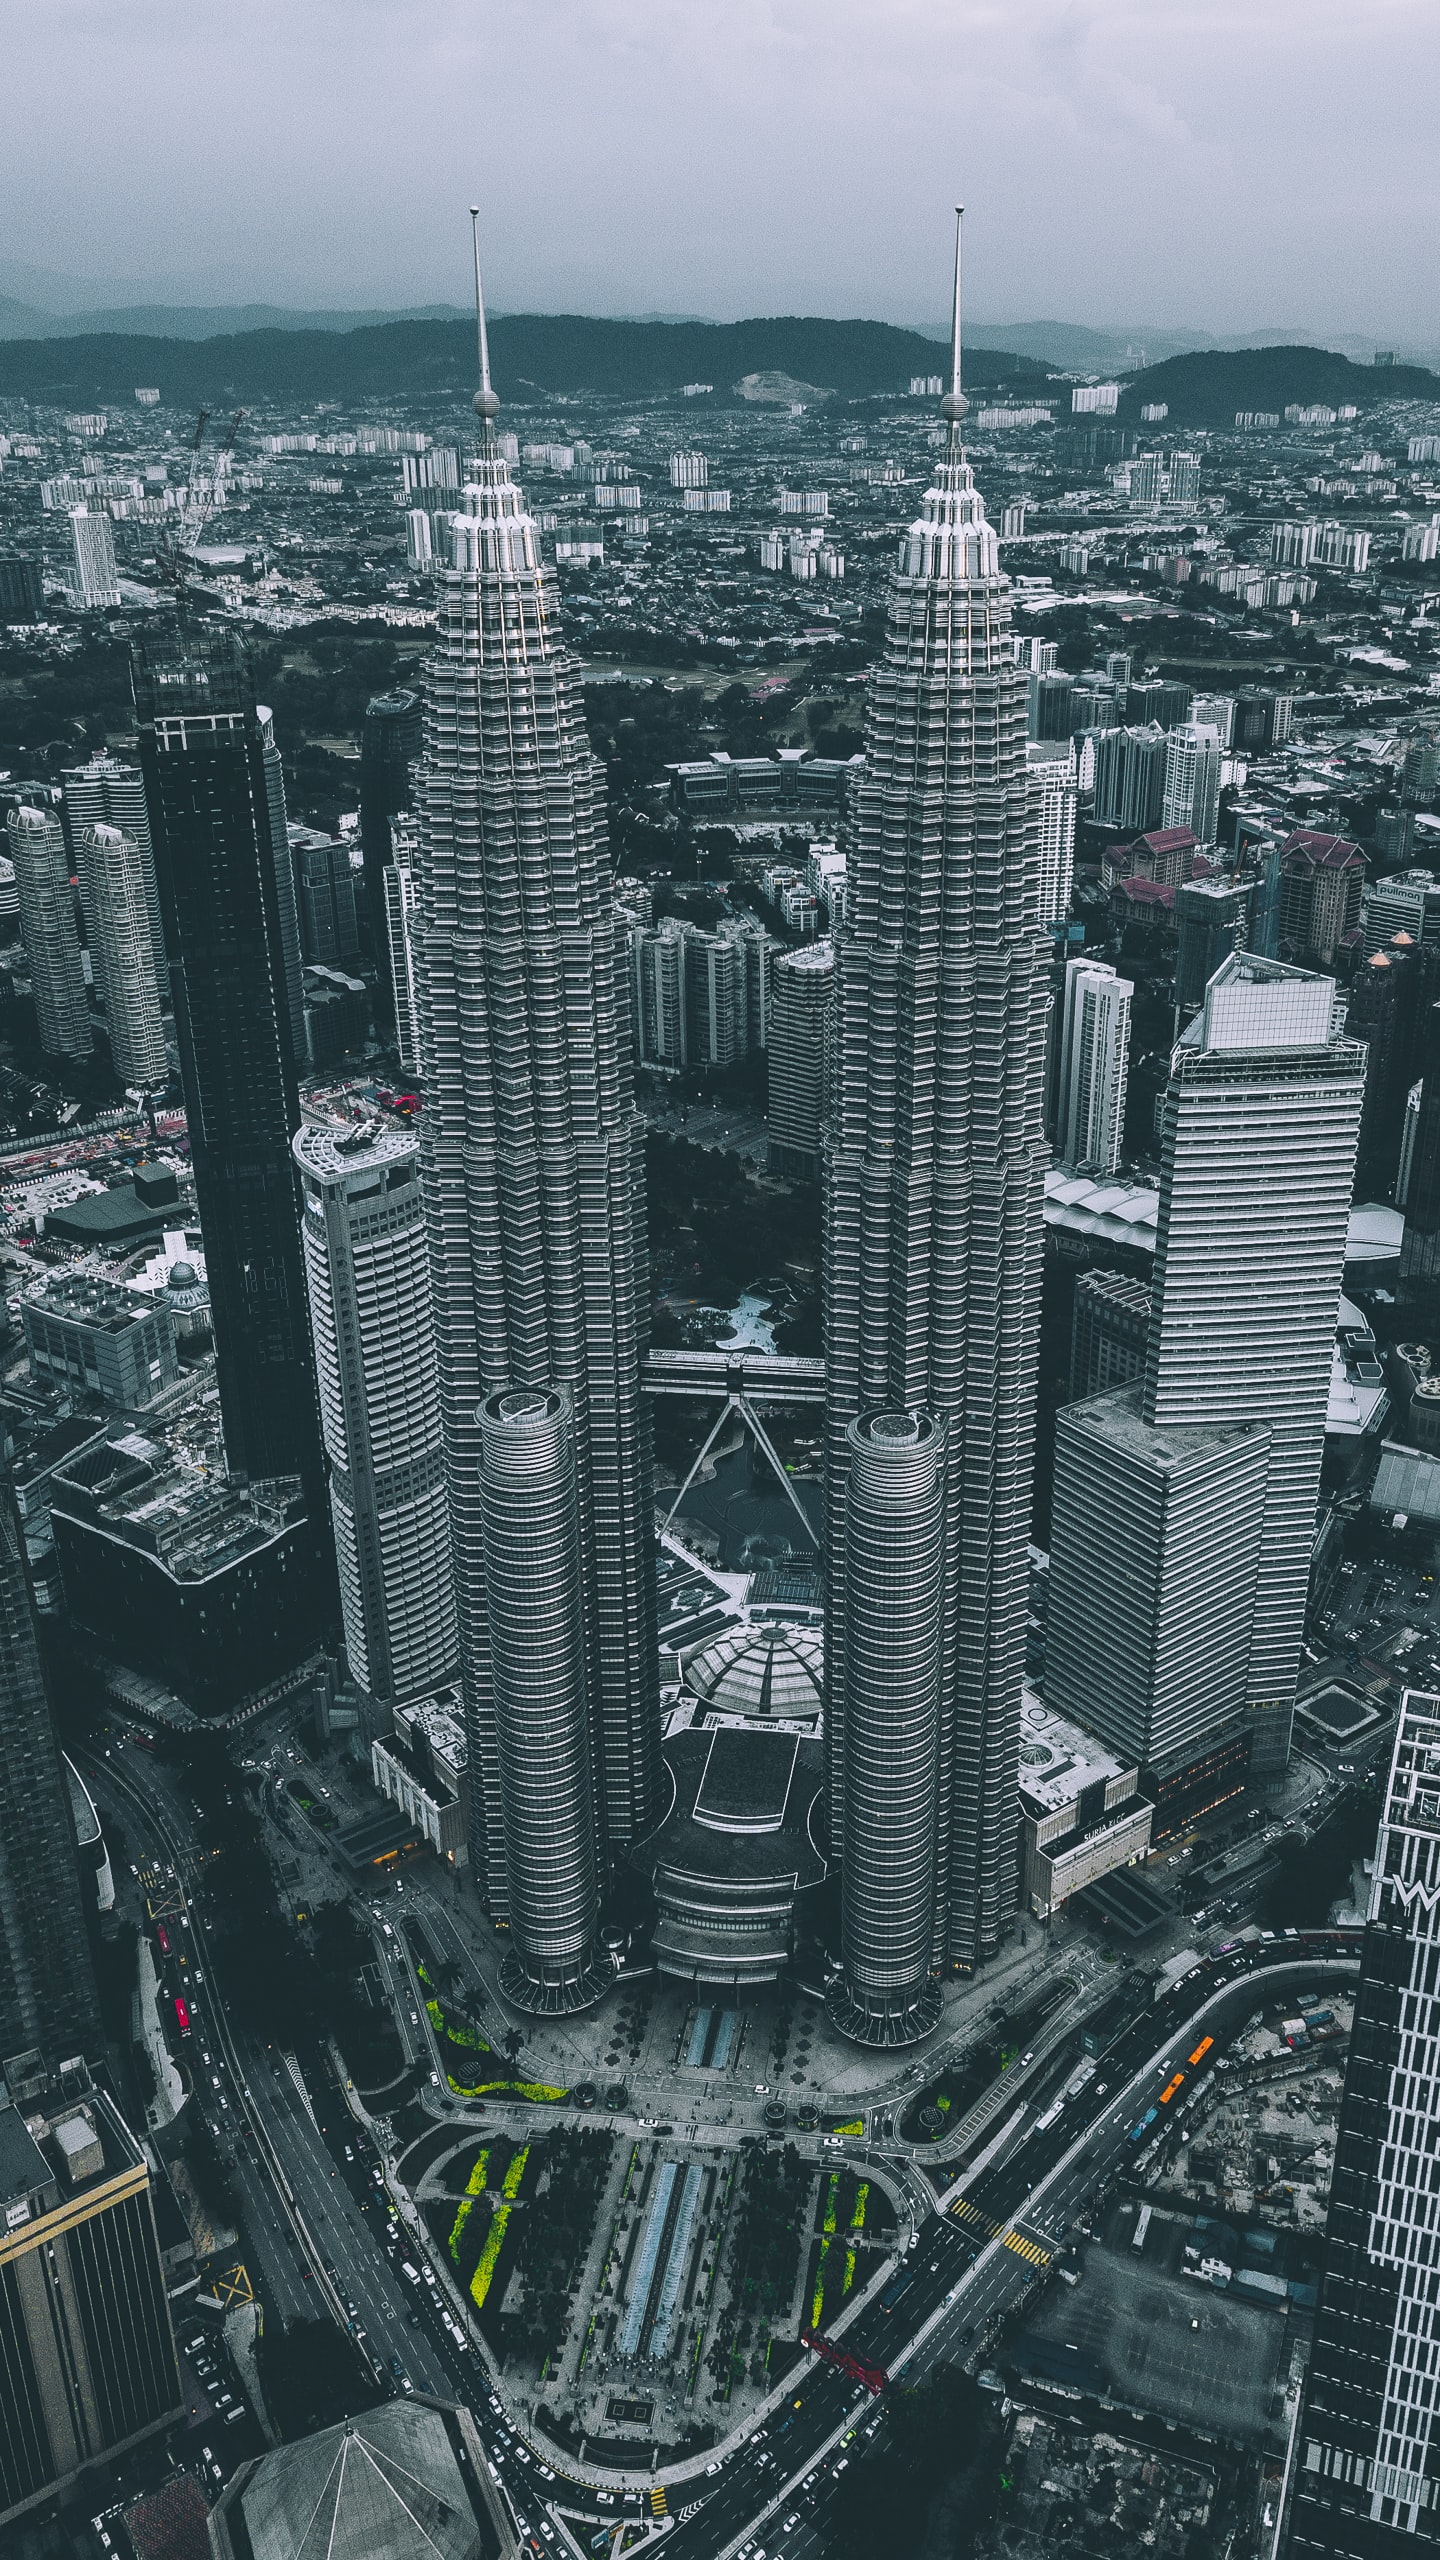 aerial view of gray twin tower concrete buildings under gray sky